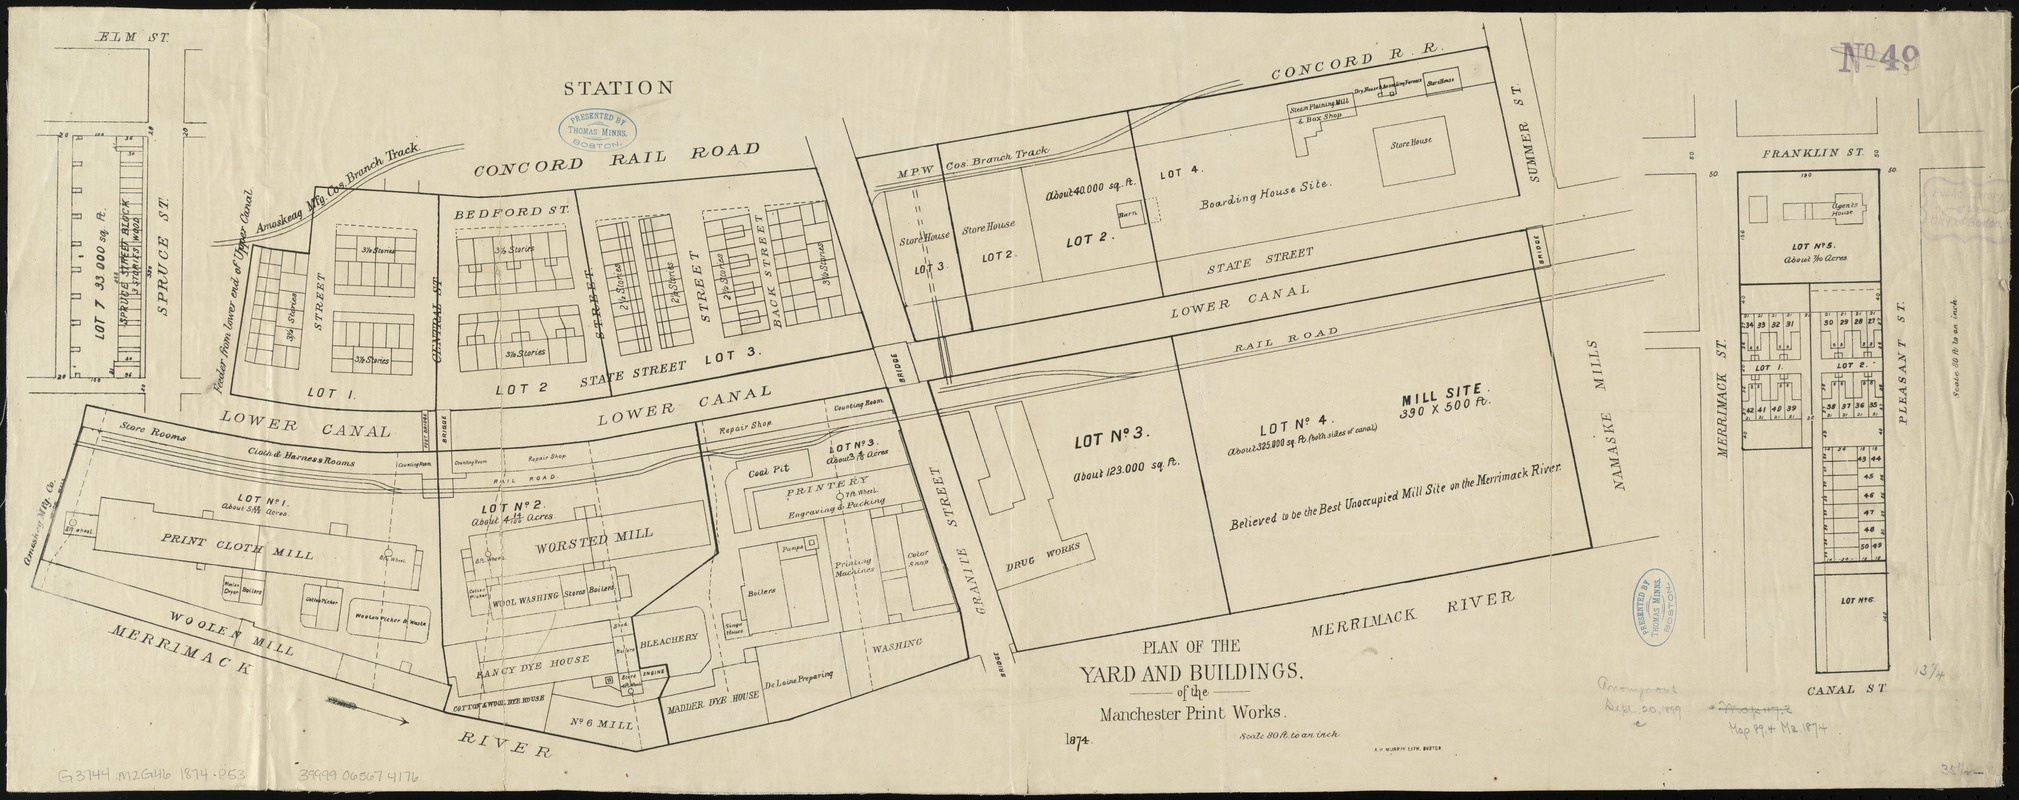 Plan of the yard and buildings of the Manchester Print Works